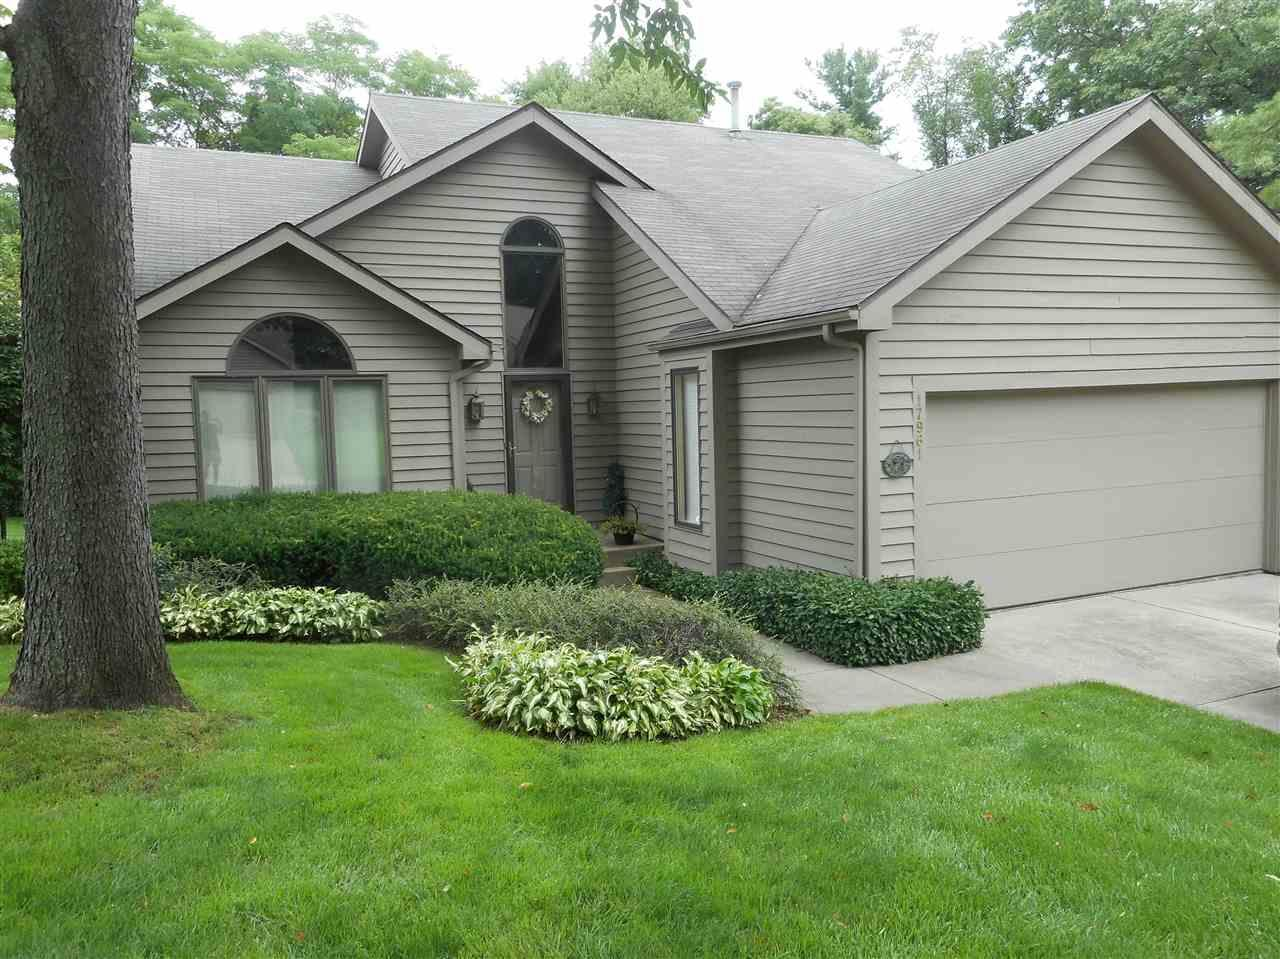 17961 Sable Ridge, South Bend, IN 46635